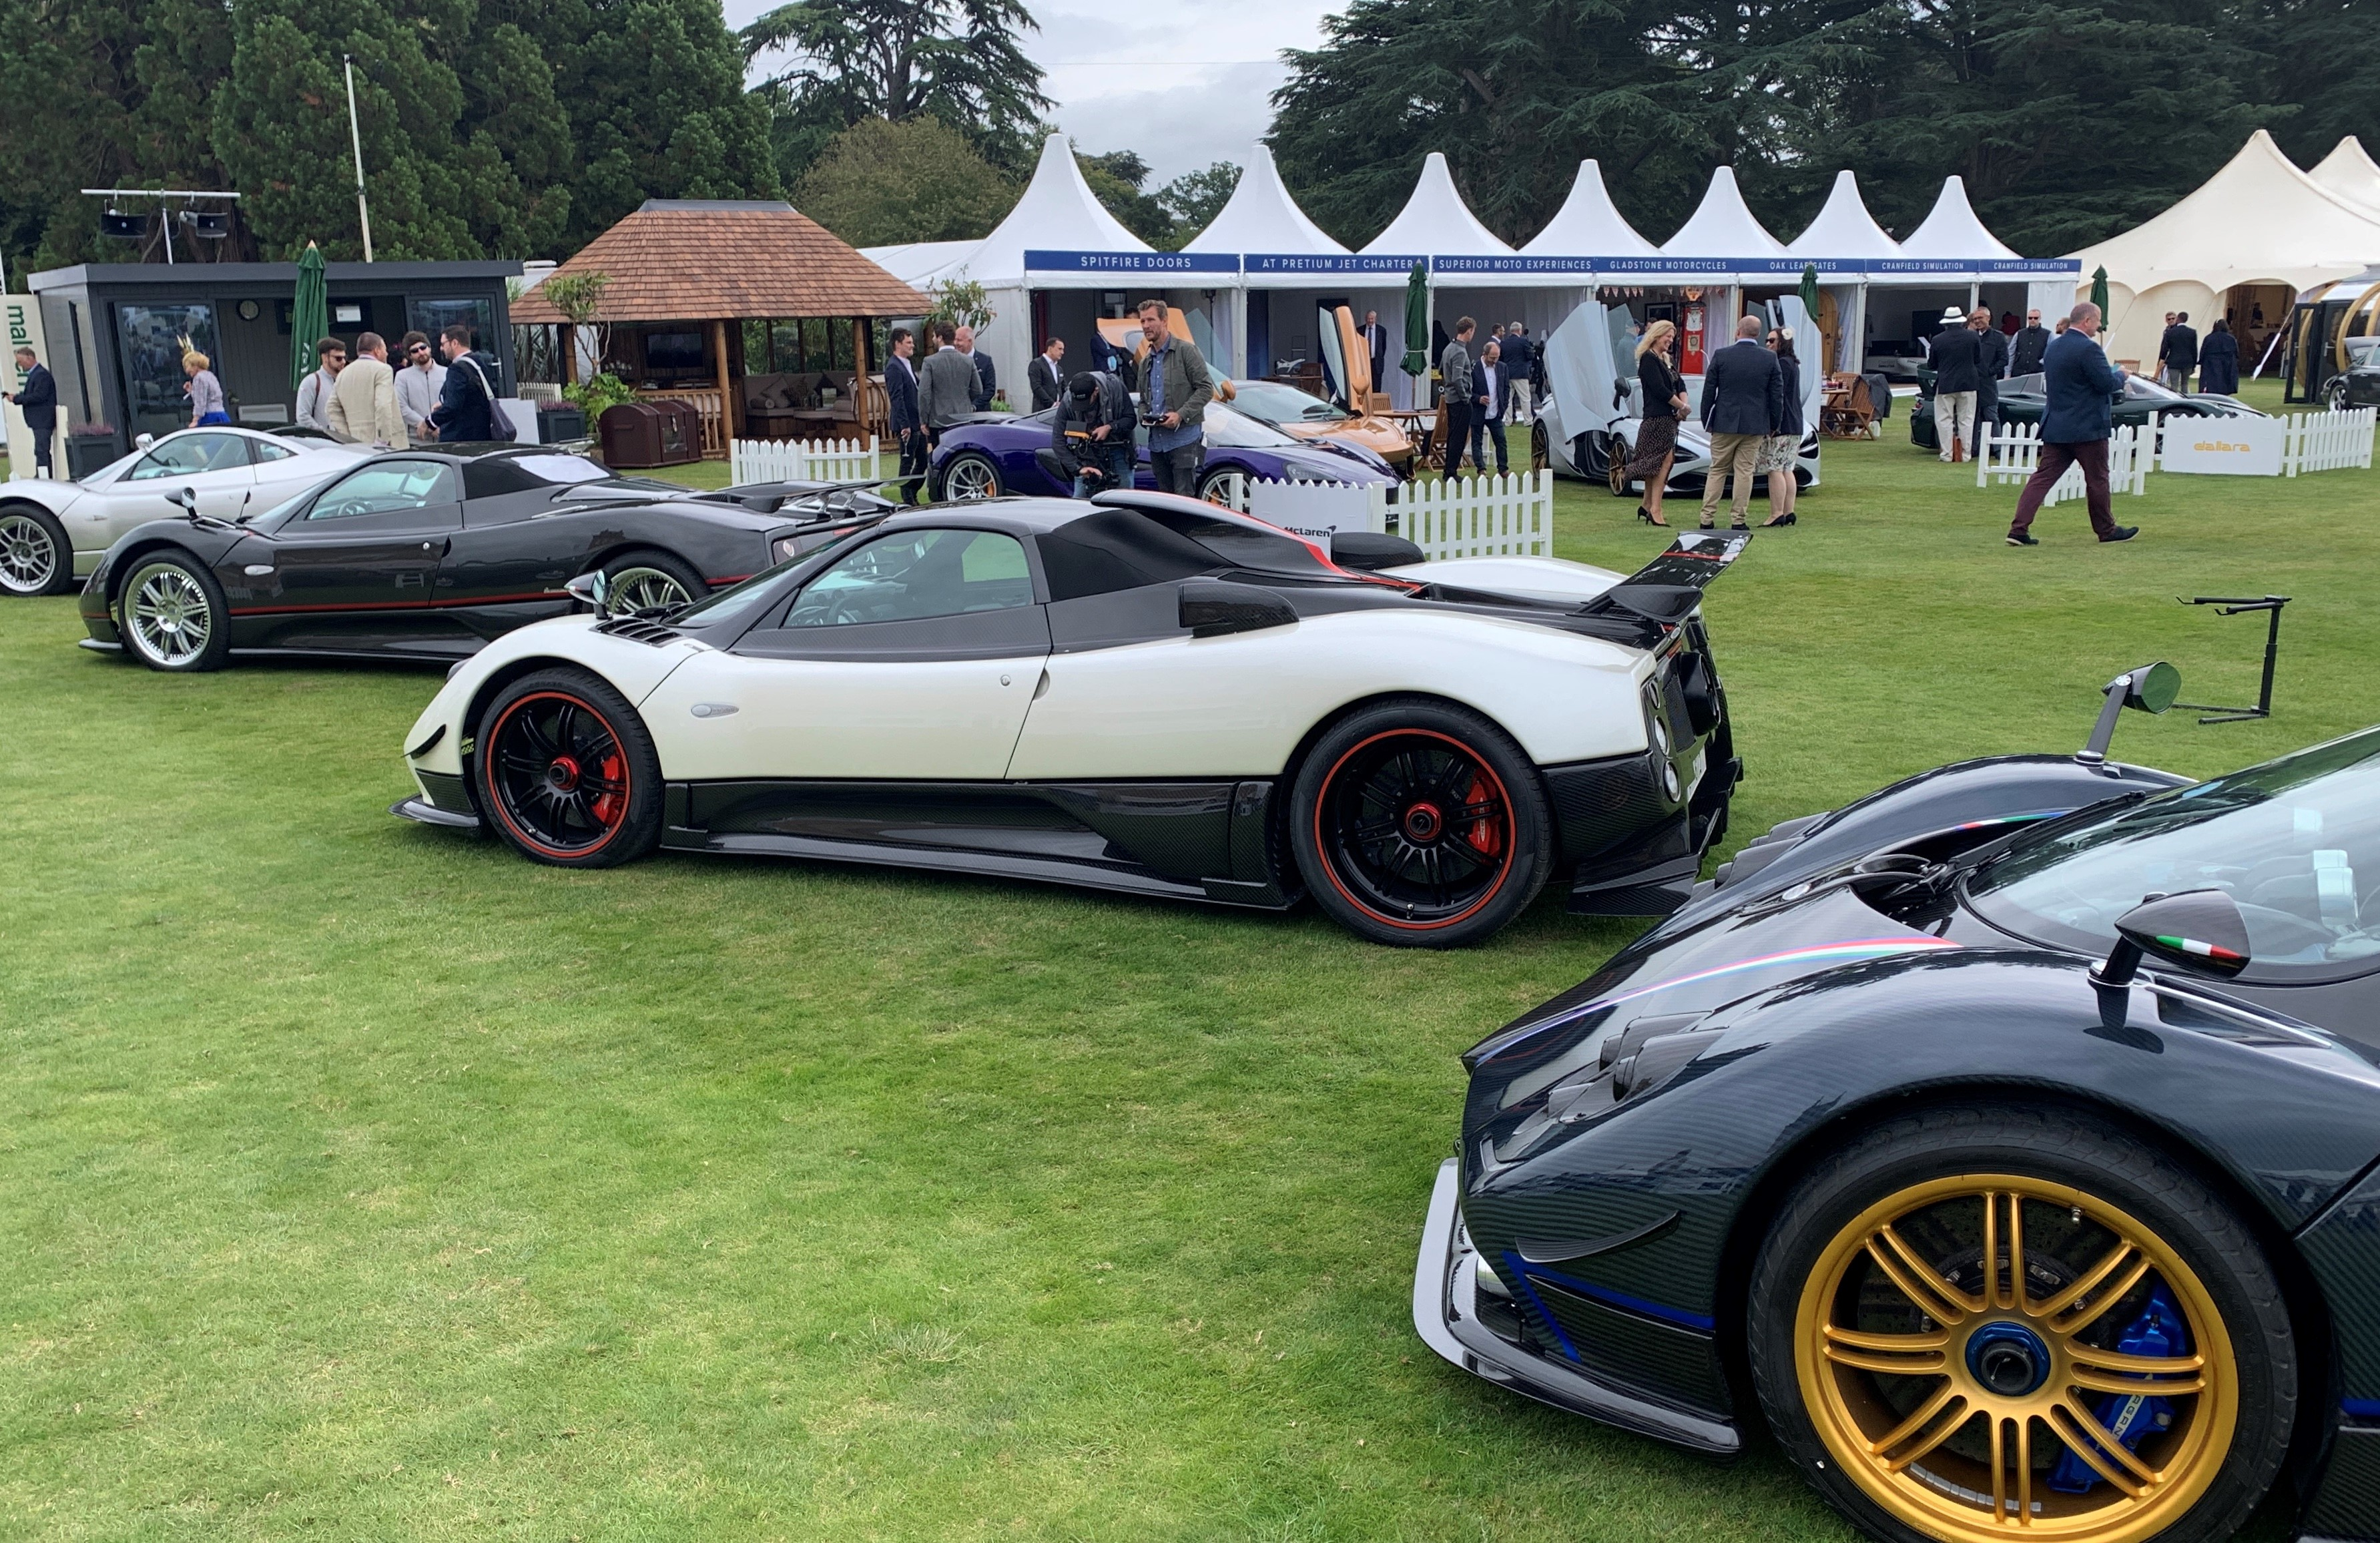 Cars from the Salon Prive day